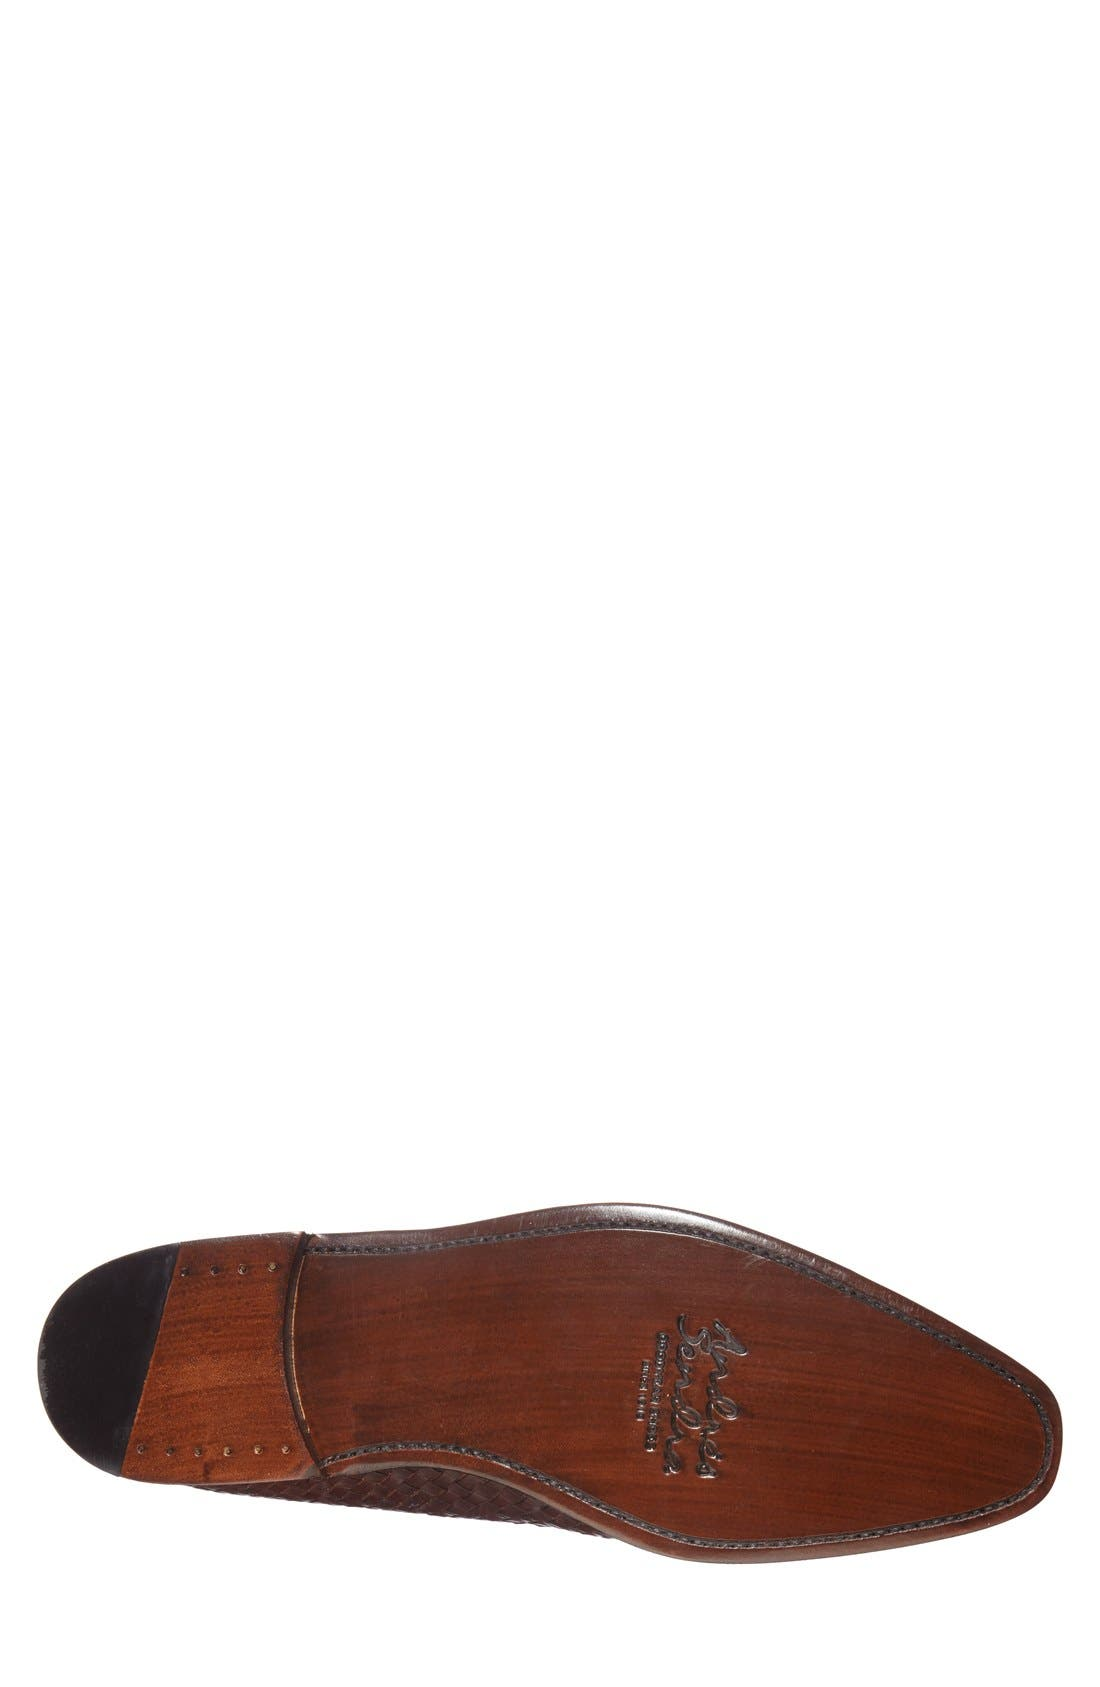 Boots 'Saratoga' Penny Loafer,                             Alternate thumbnail 4, color,                             Brown